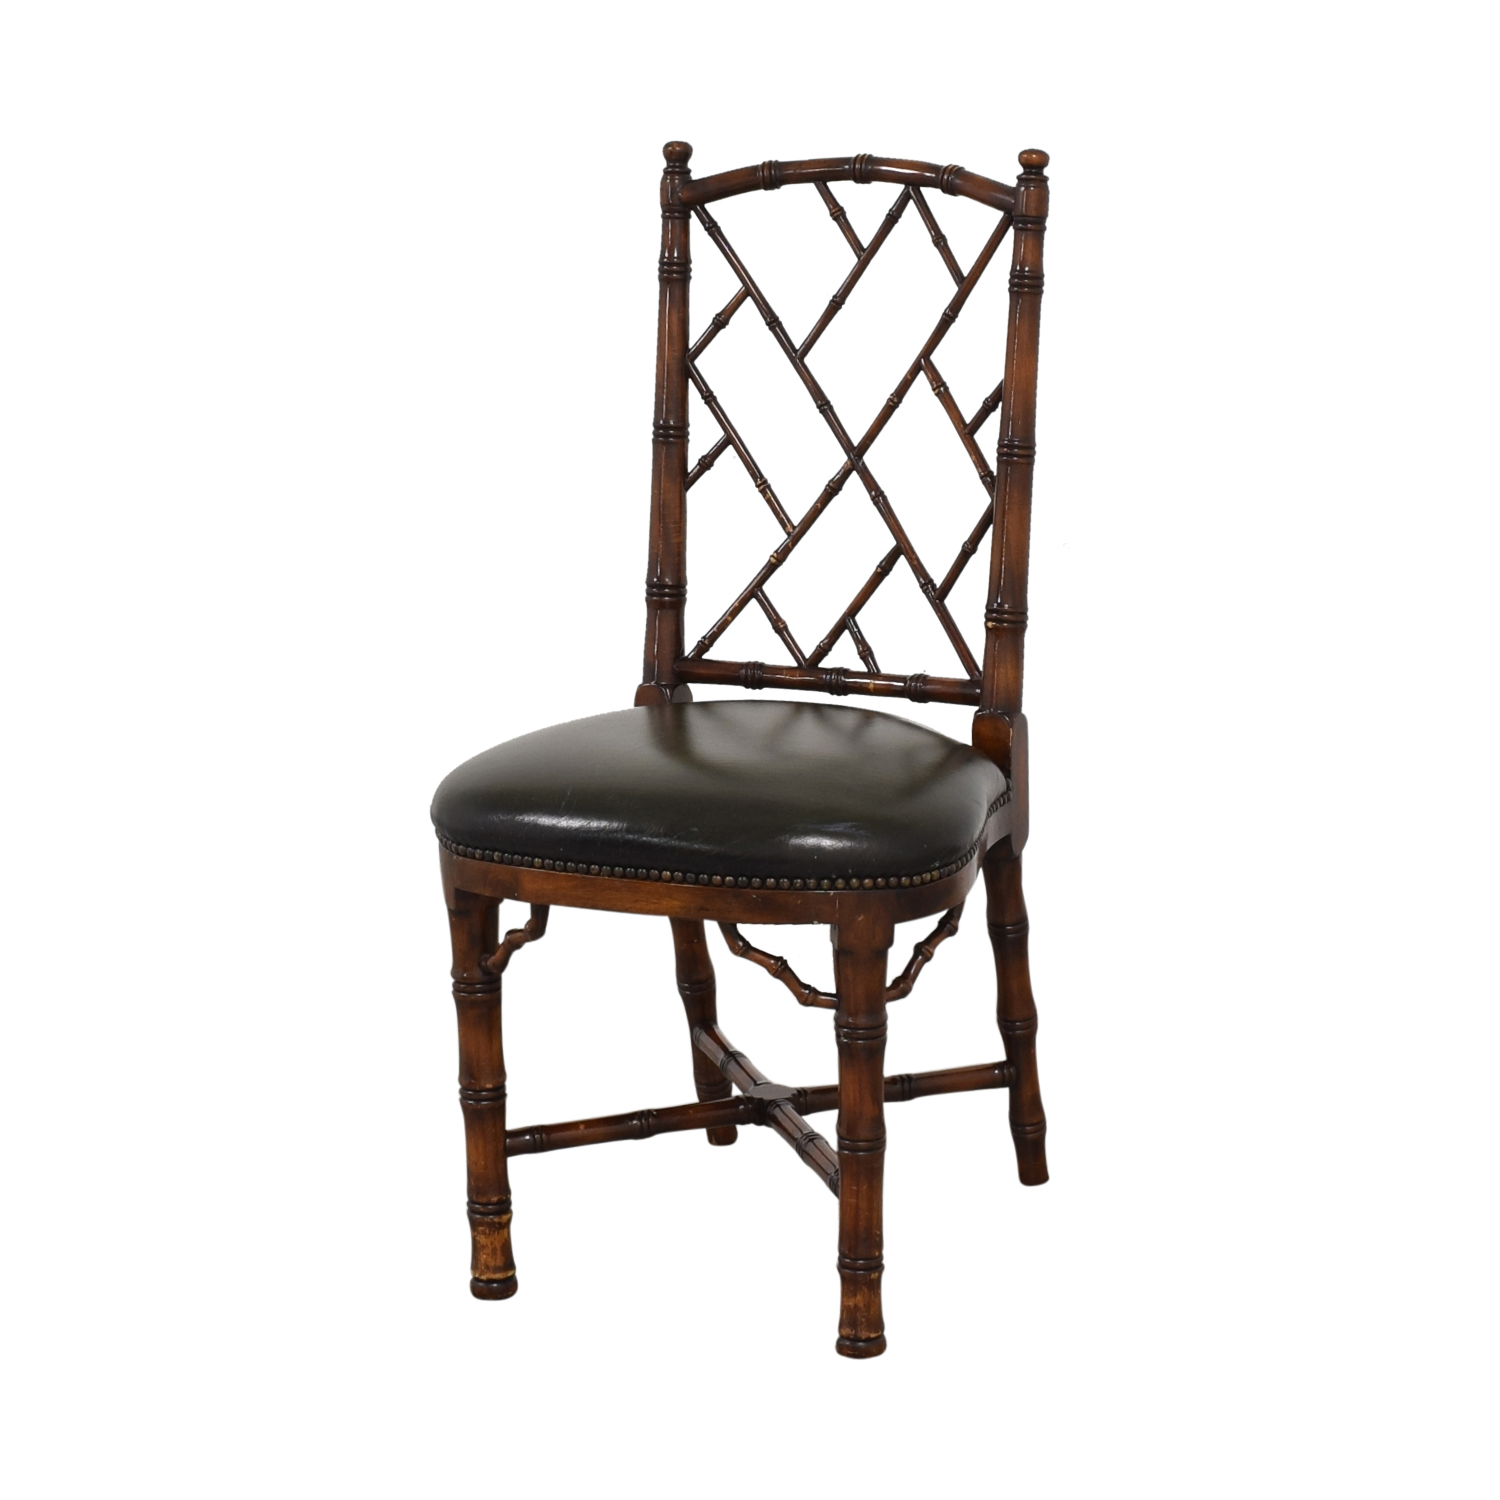 Theodore Alexander Trellis Side Chairs / Chairs